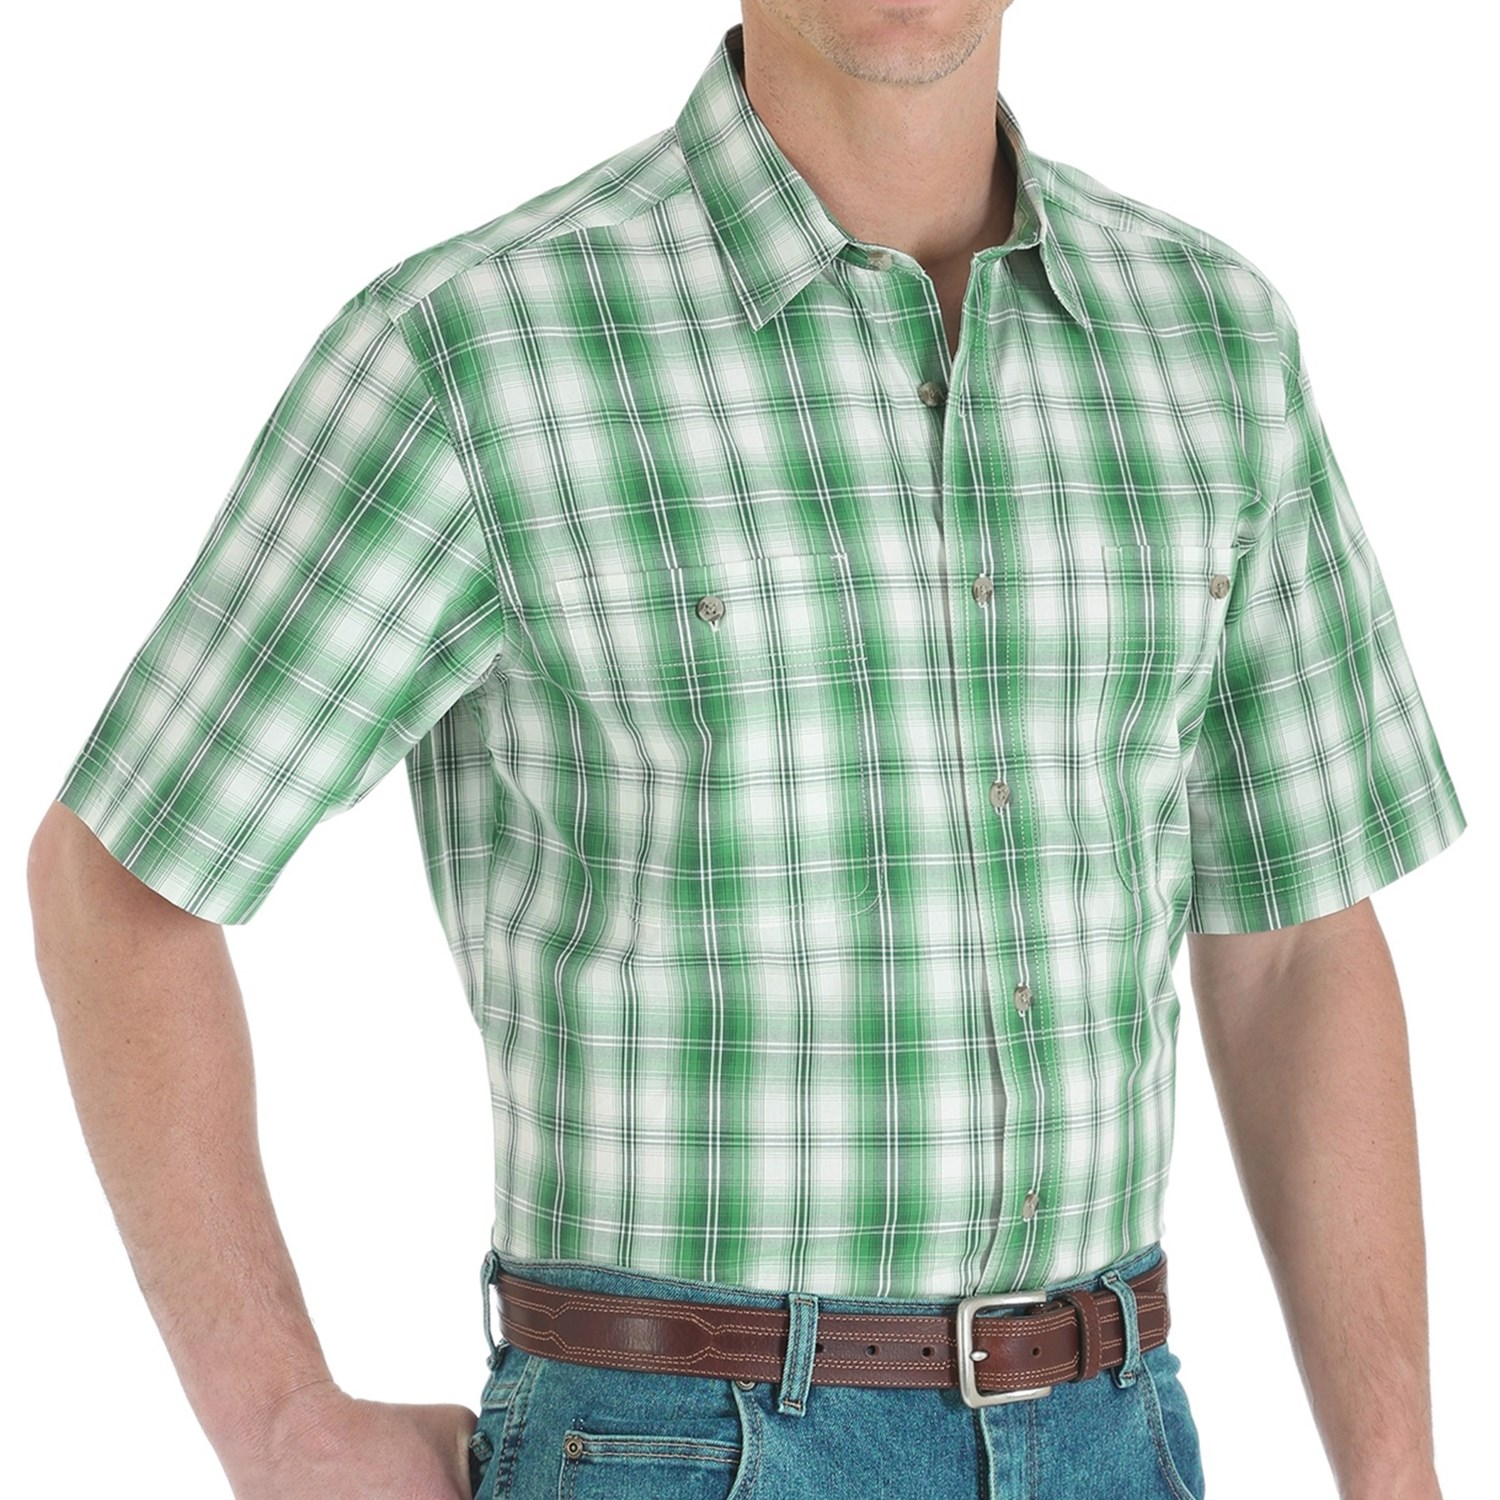 Green plaid short sleeve shirt images Short sleeve plaid shirts